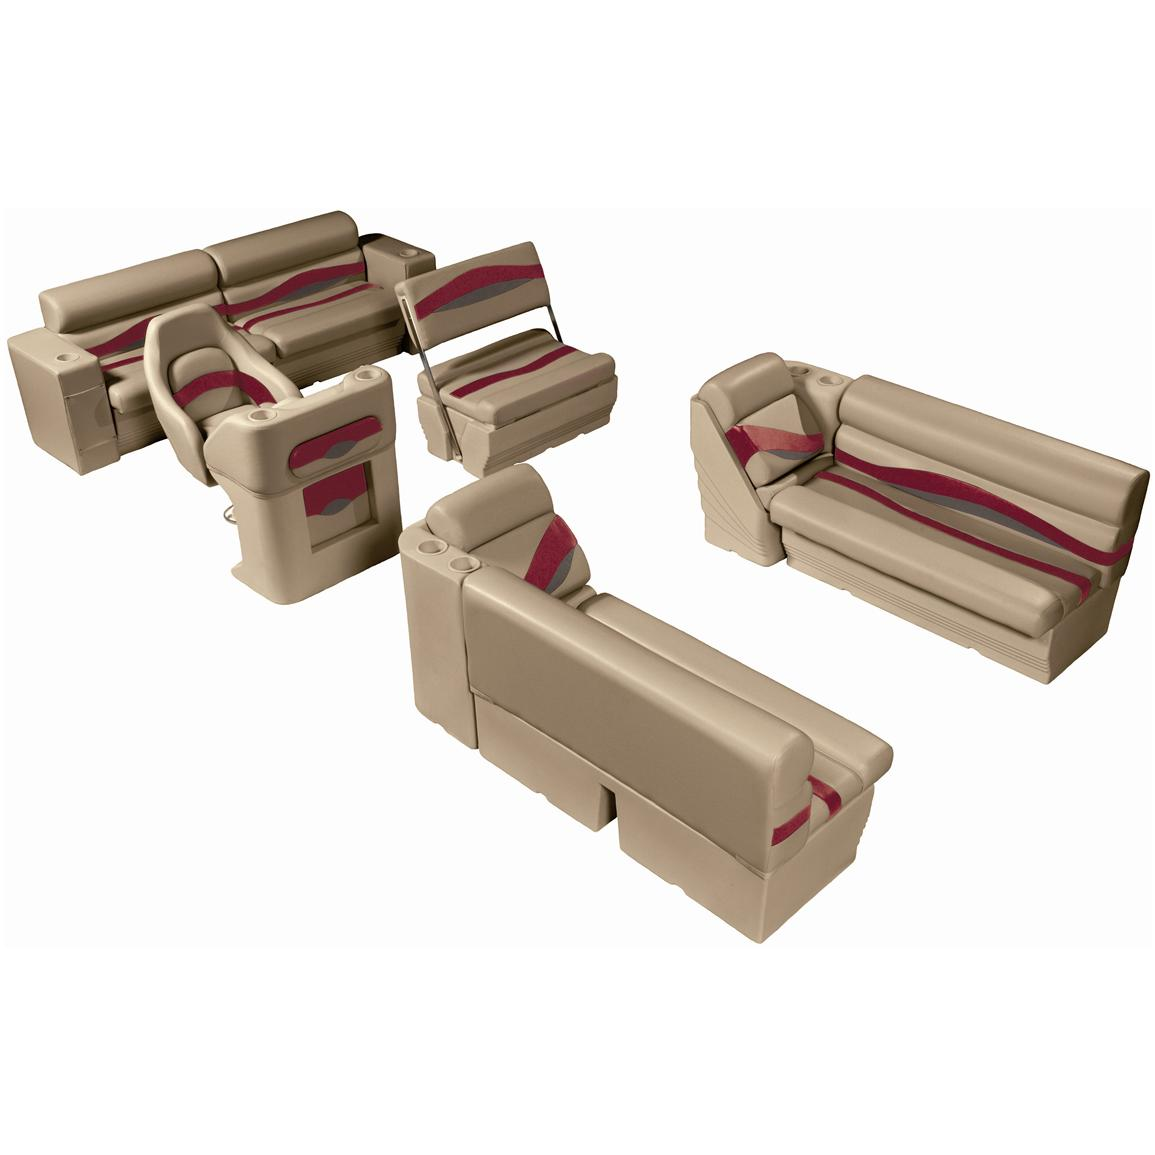 Wise® Premier Pontoon Traditional Seat Group, Color E - Mocha Java Punch / Dark Red / Rock Salt